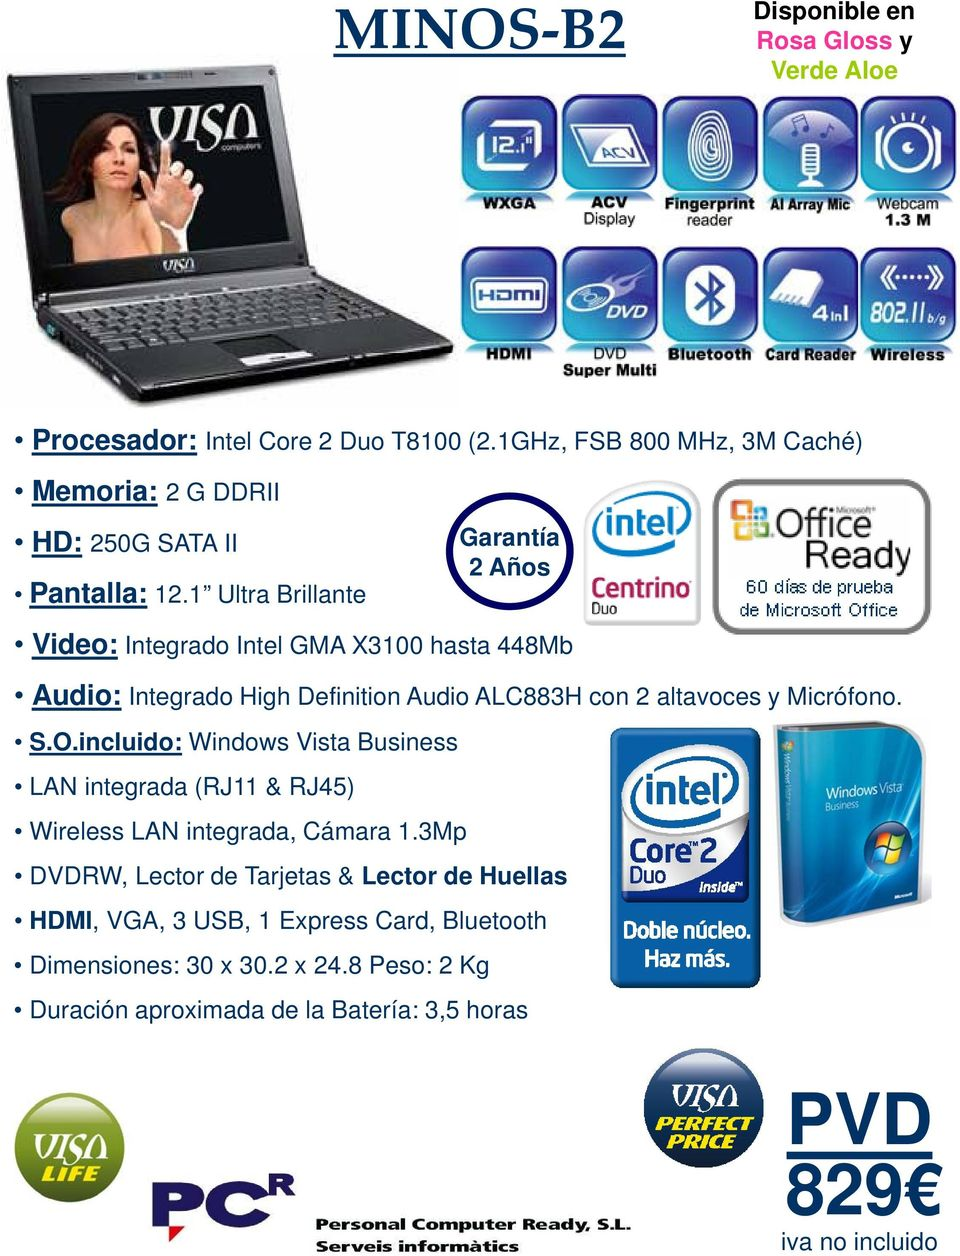 1 Ultra Brillante Video: Integrado Intel GMA X3100 hasta 448Mb Audio: Integrado High Definition Audio ALC883H con 2